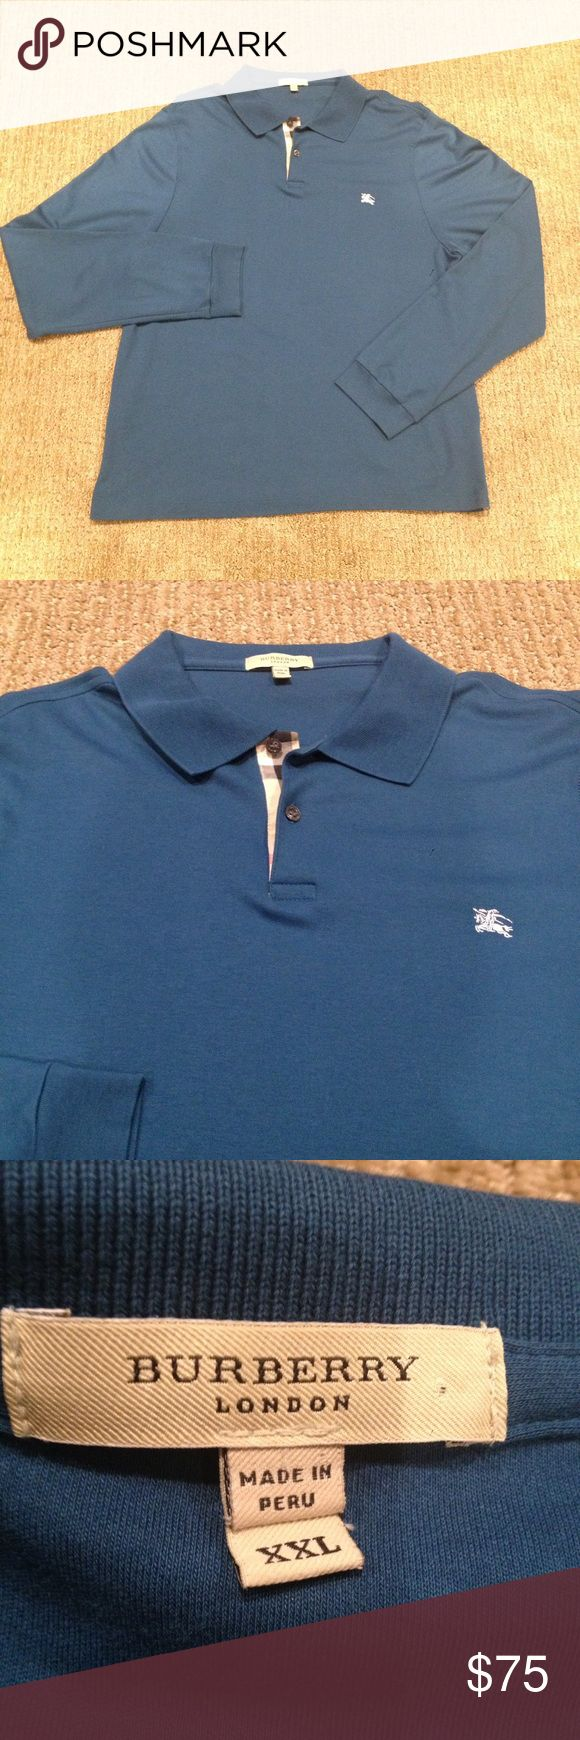 Men's Burberry Long Sleeve Polo XXL In great condition! Hardly wore. Has only been dry cleaned and still looks fairly new! Has no flaws. Men's XXL. 100% authentic! Fits like a XL. Burberry Shirts Polos